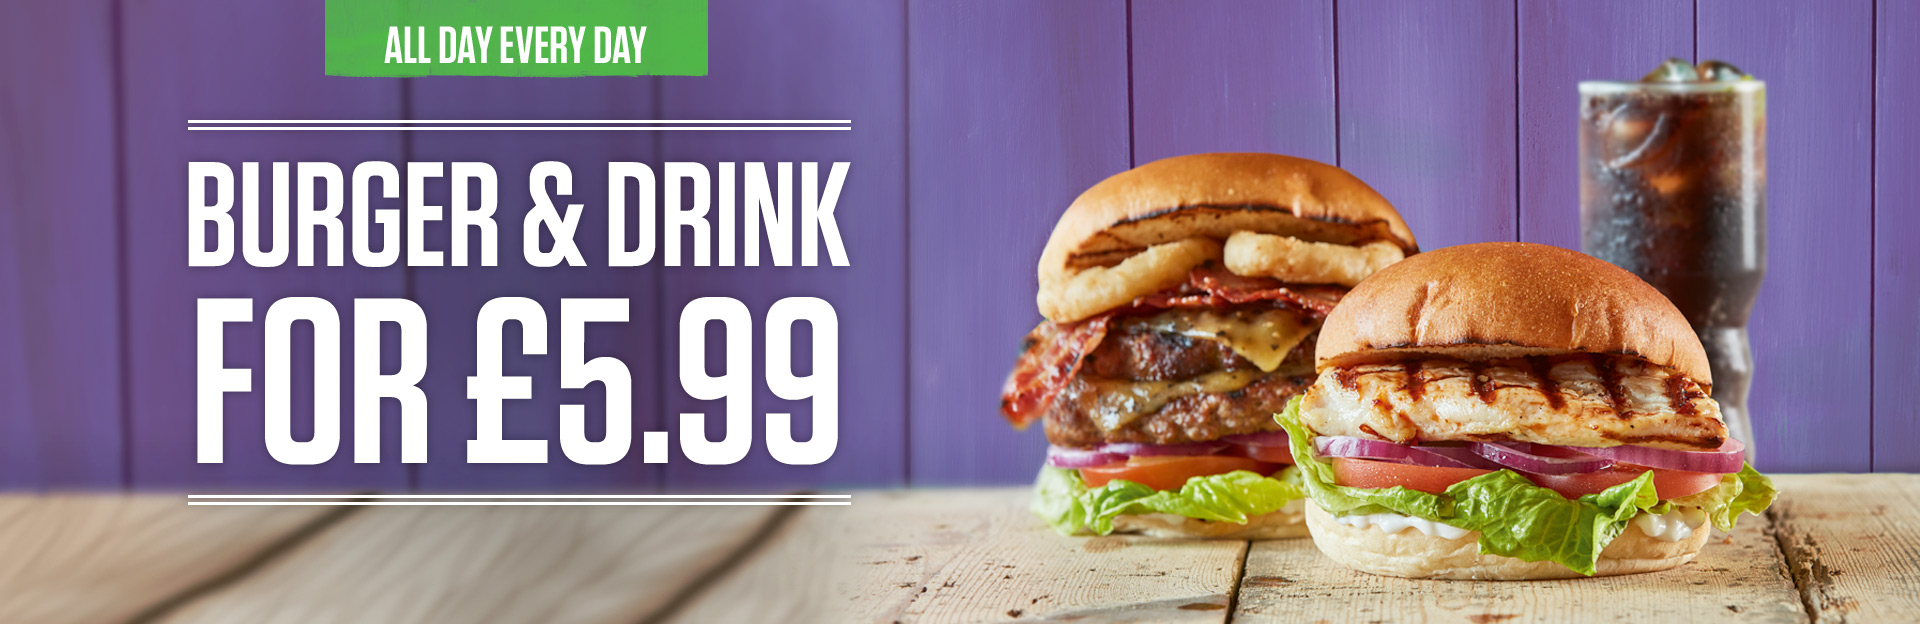 Burger and Drink Deal at The Crofter's Arms